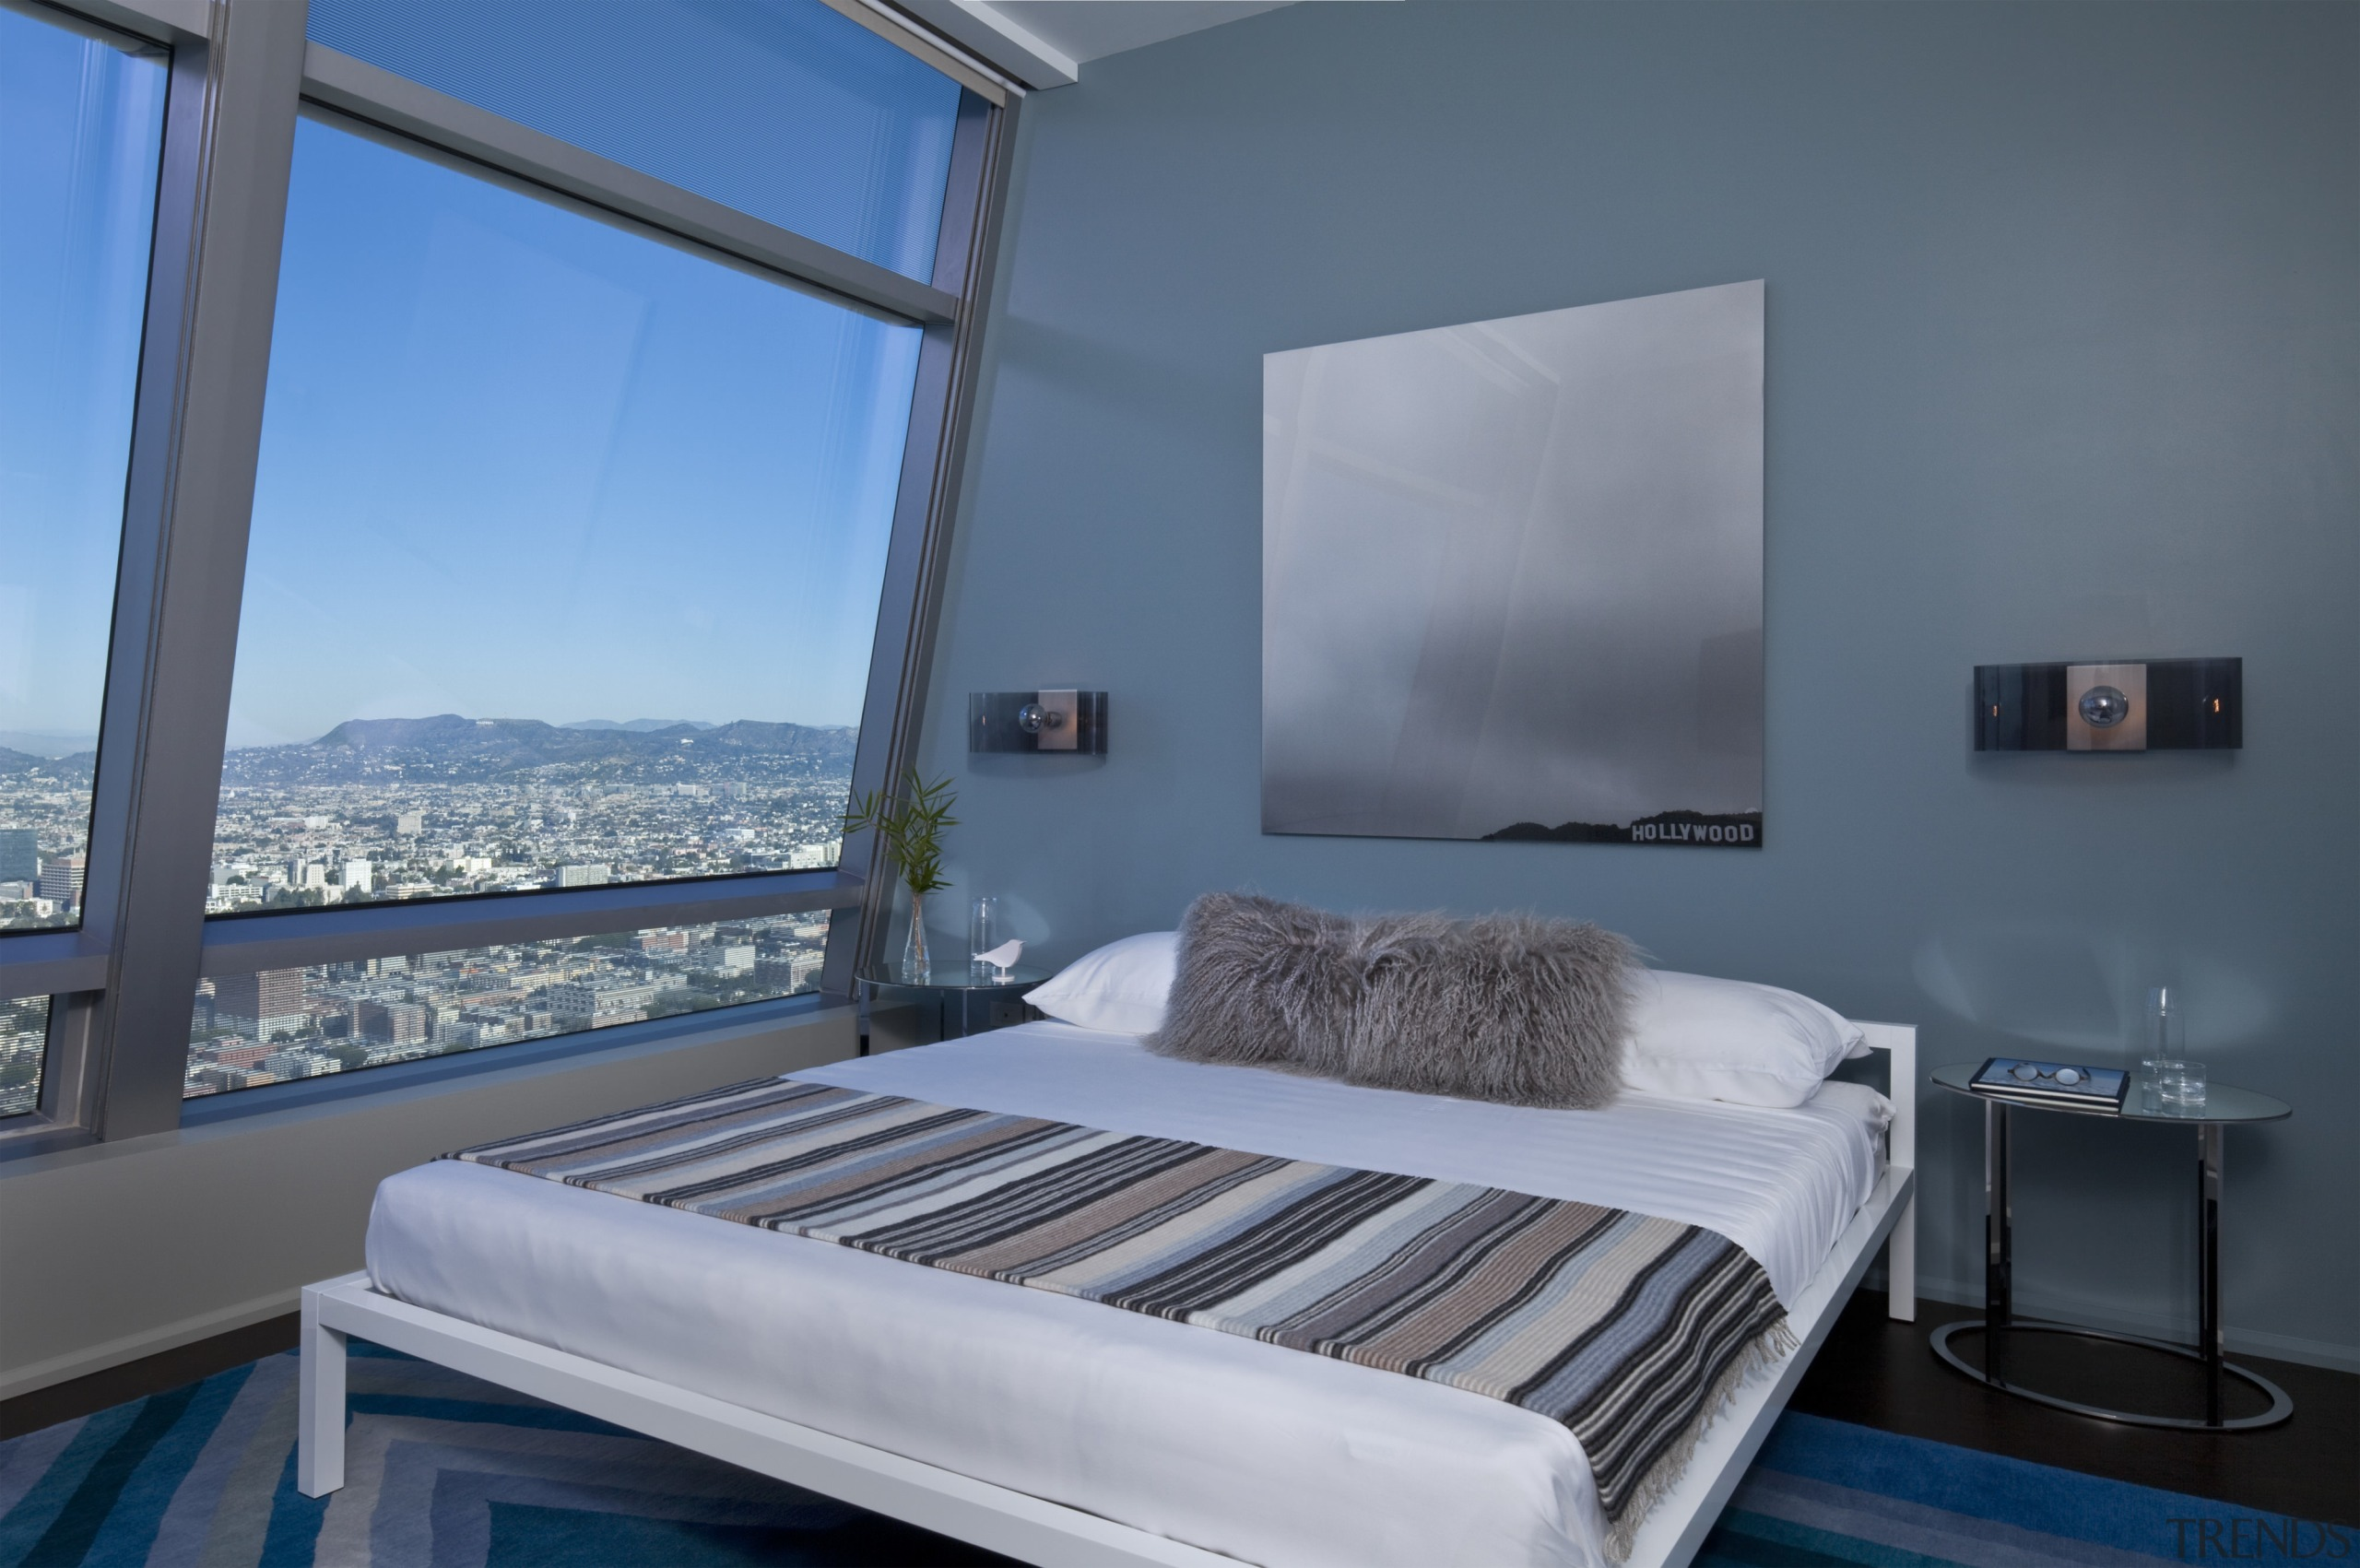 Artwork featuring the Hollywood Hills and sign echoes bed, bed frame, bedroom, daylighting, interior design, mattress, real estate, room, suite, window, teal, gray